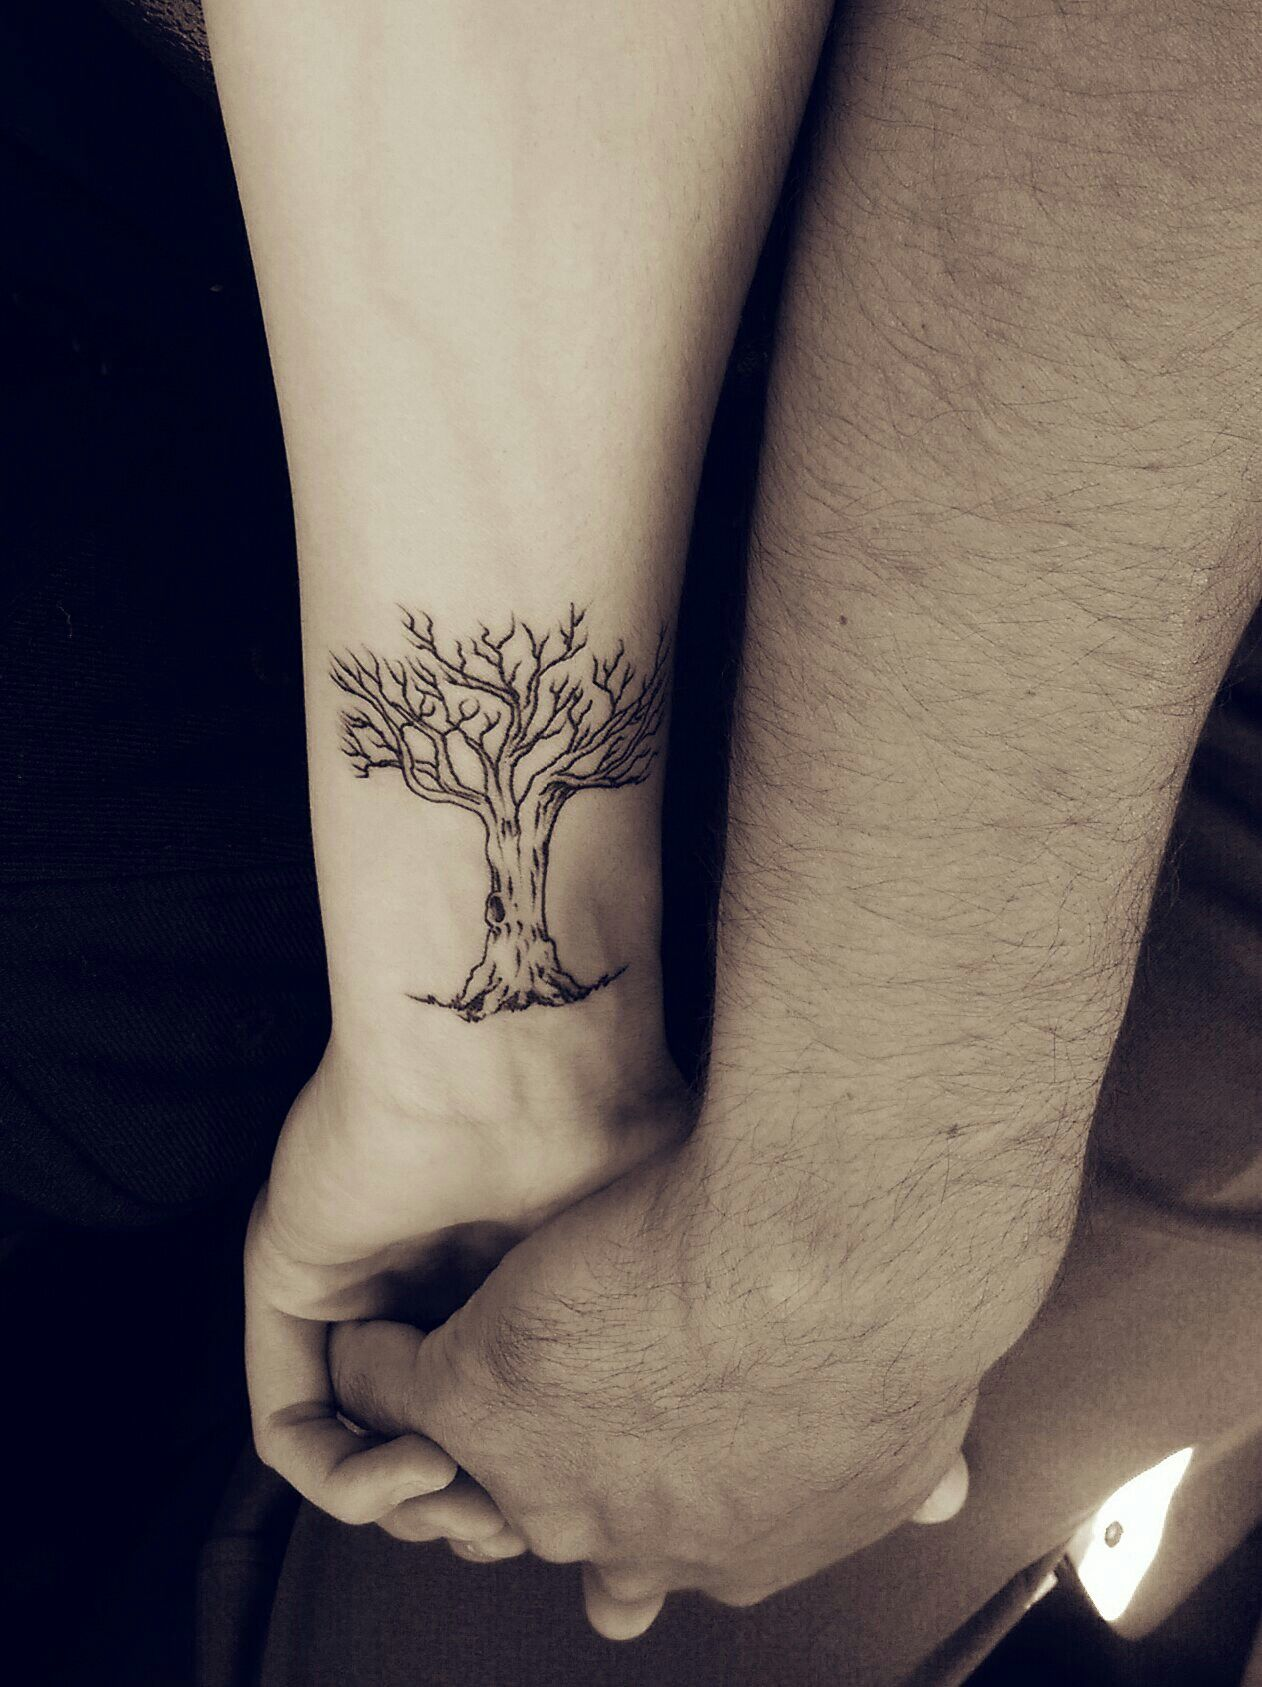 Oak Tree Tattoo...from little acorns great oak trees grow